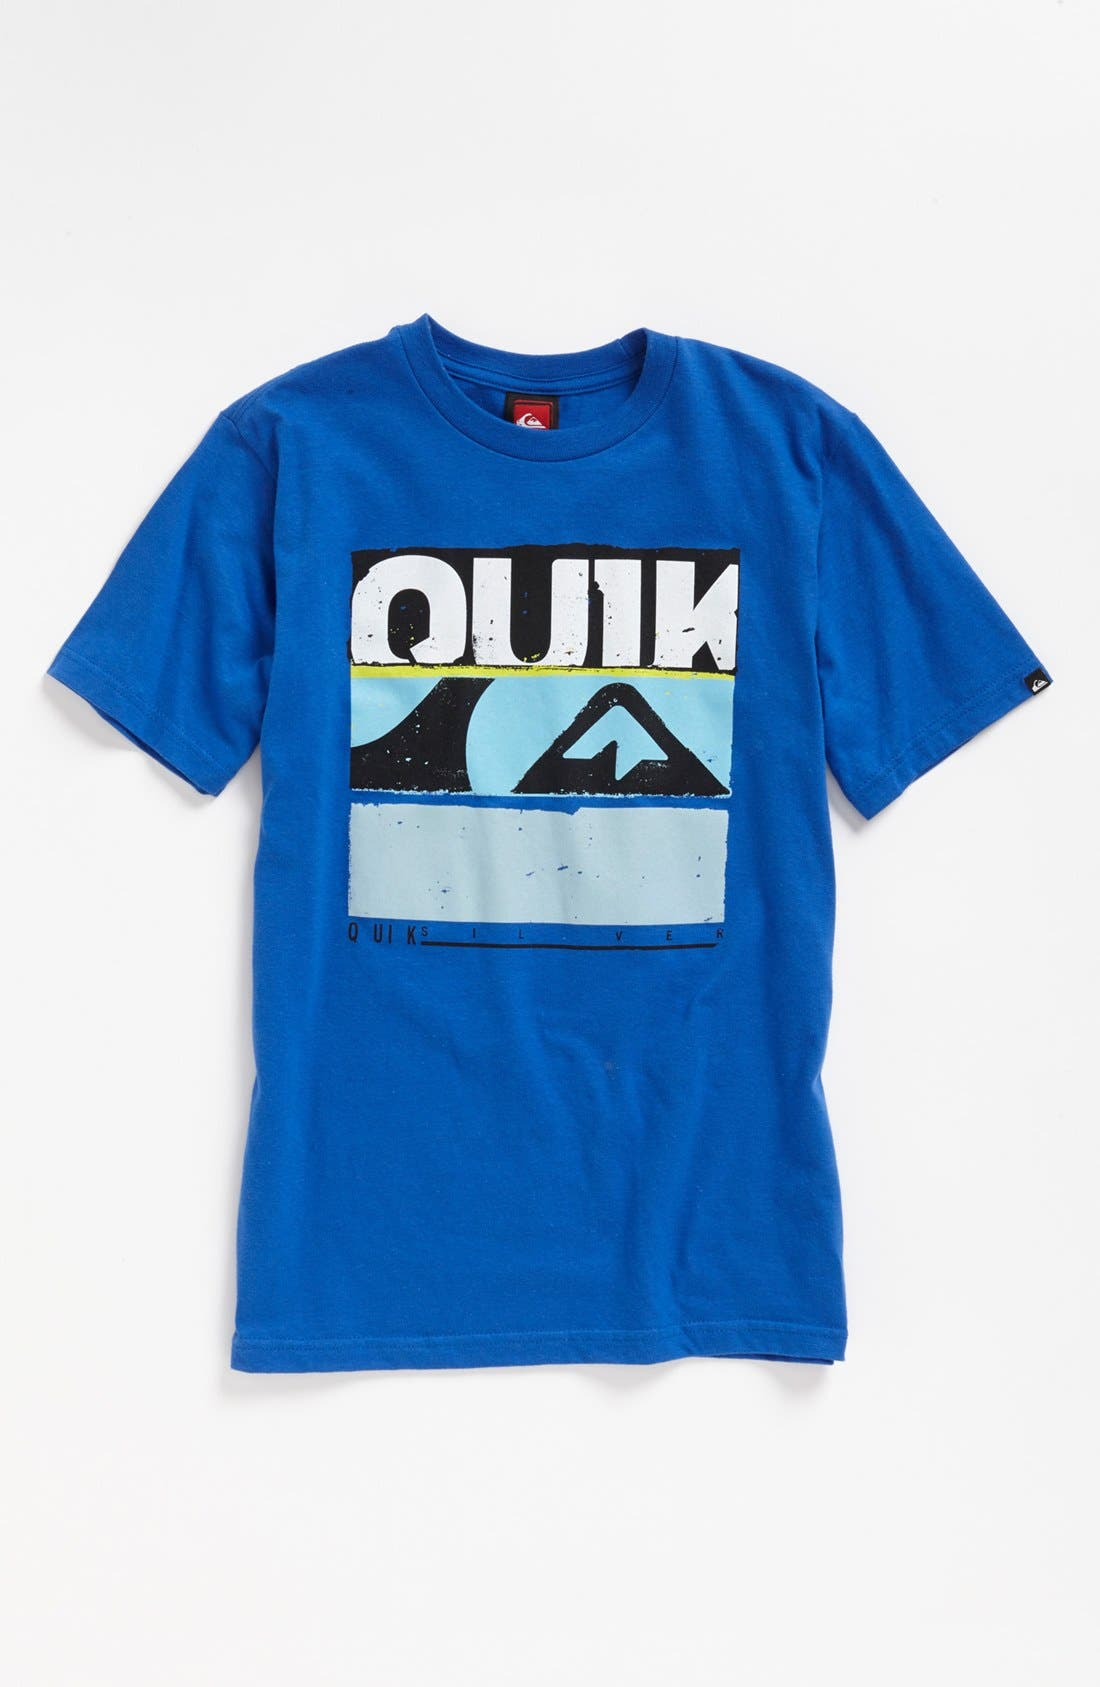 Alternate Image 1 Selected - Quiksilver 'Unglued' T-Shirt (Little Boys & Big Boys) (Online Only)